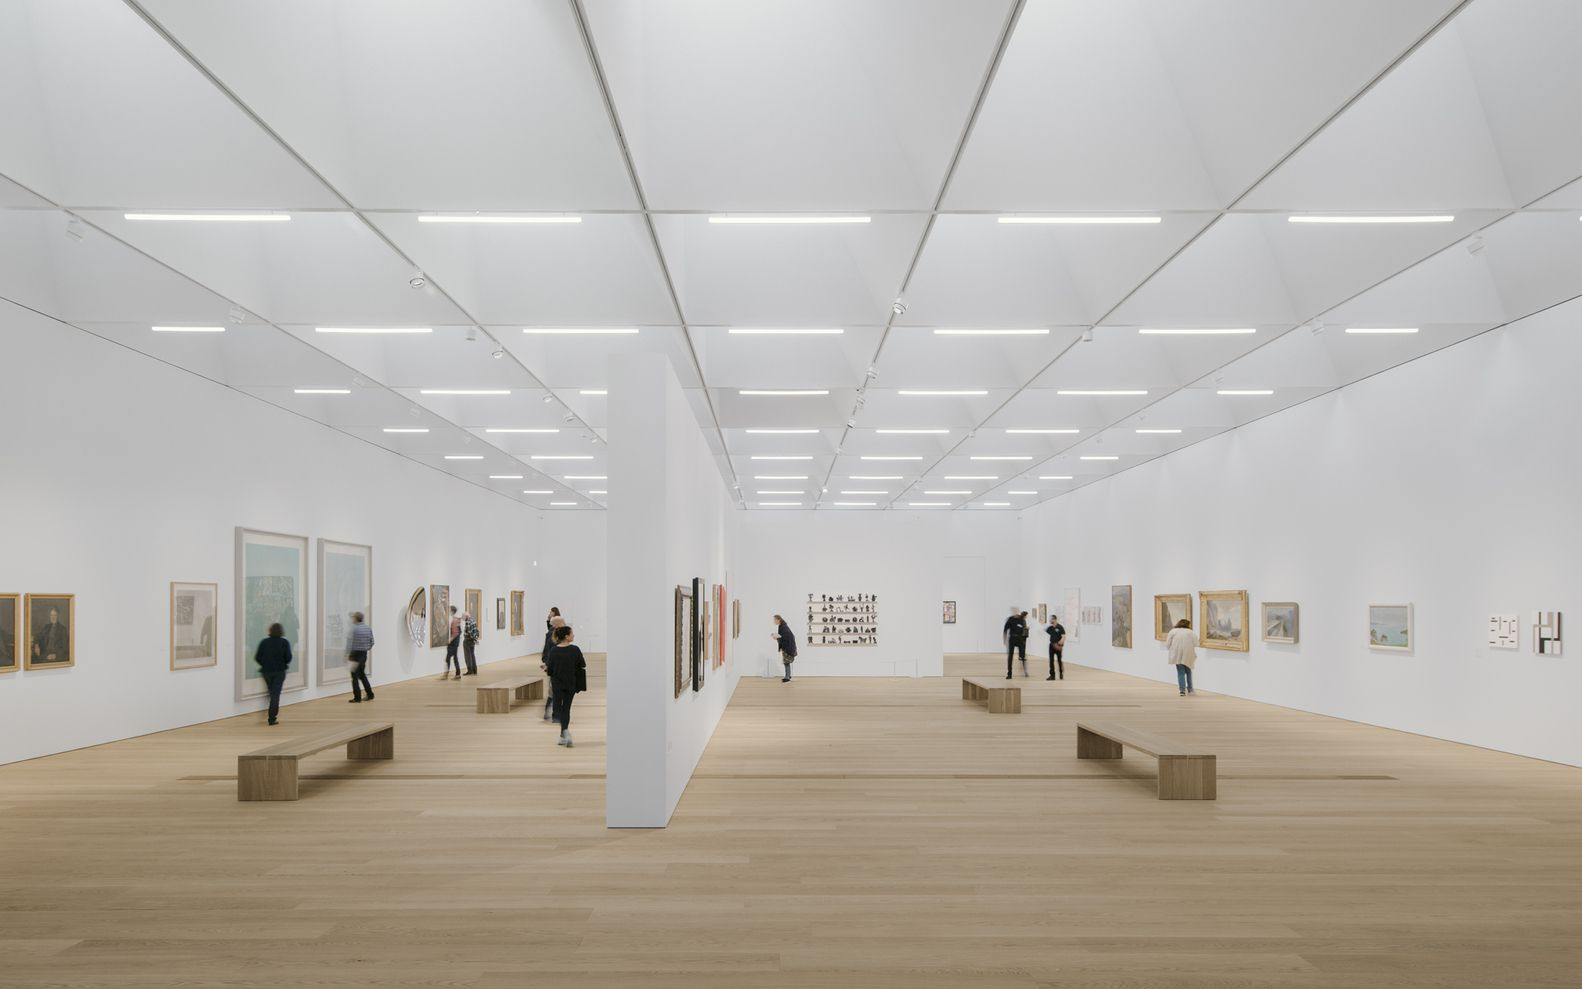 MUSEE CANTONAL DES BEAUX ARTS DE LAUSANNE by BAROZZI VEIGA ARCHITECTS